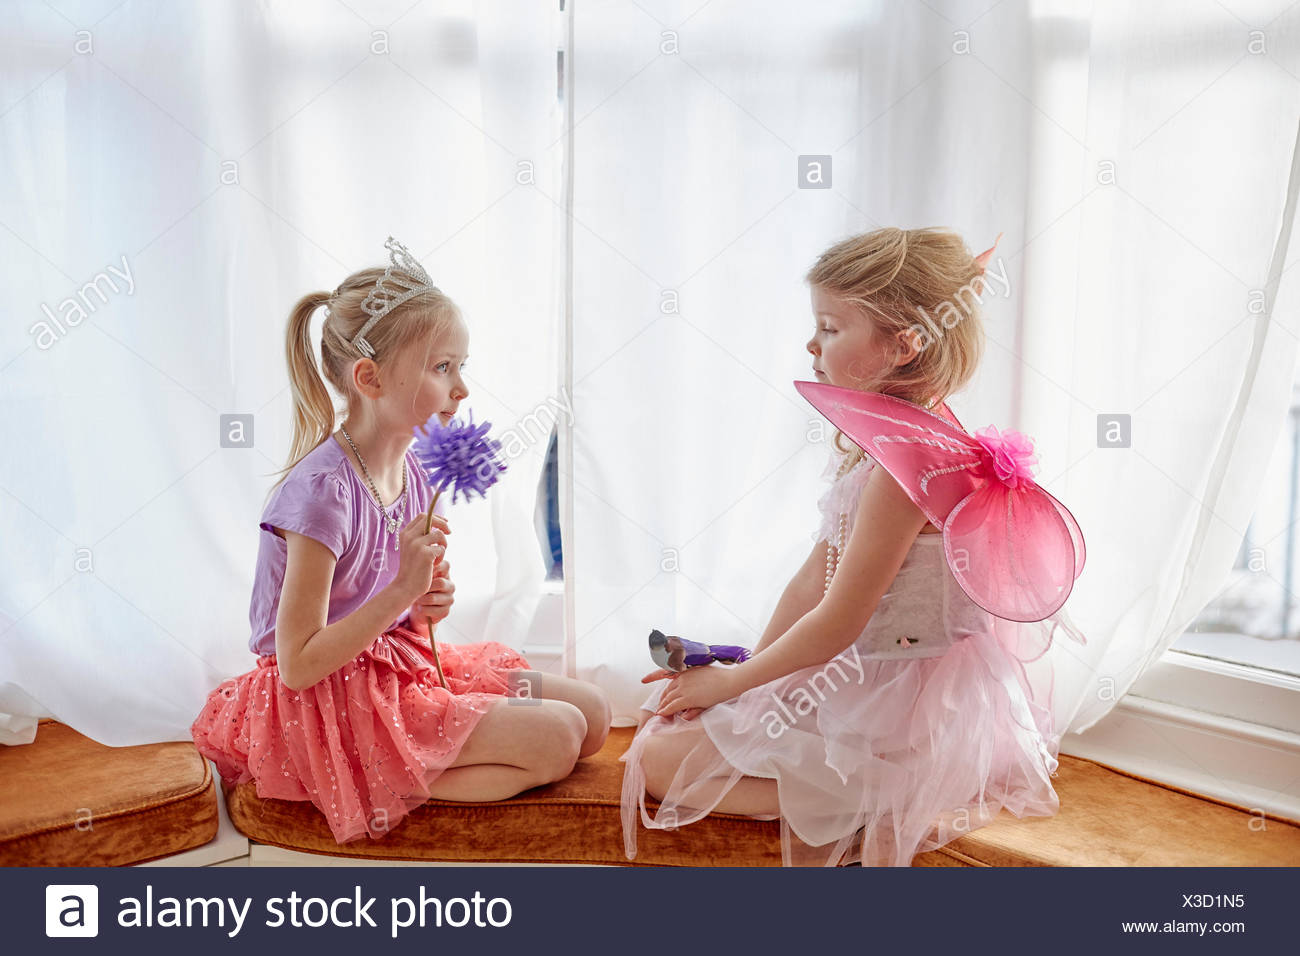 Two young girls in fancy dress sitting face to face - Stock Image & Girls In Fancy Dress Stock Photos u0026 Girls In Fancy Dress Stock ...